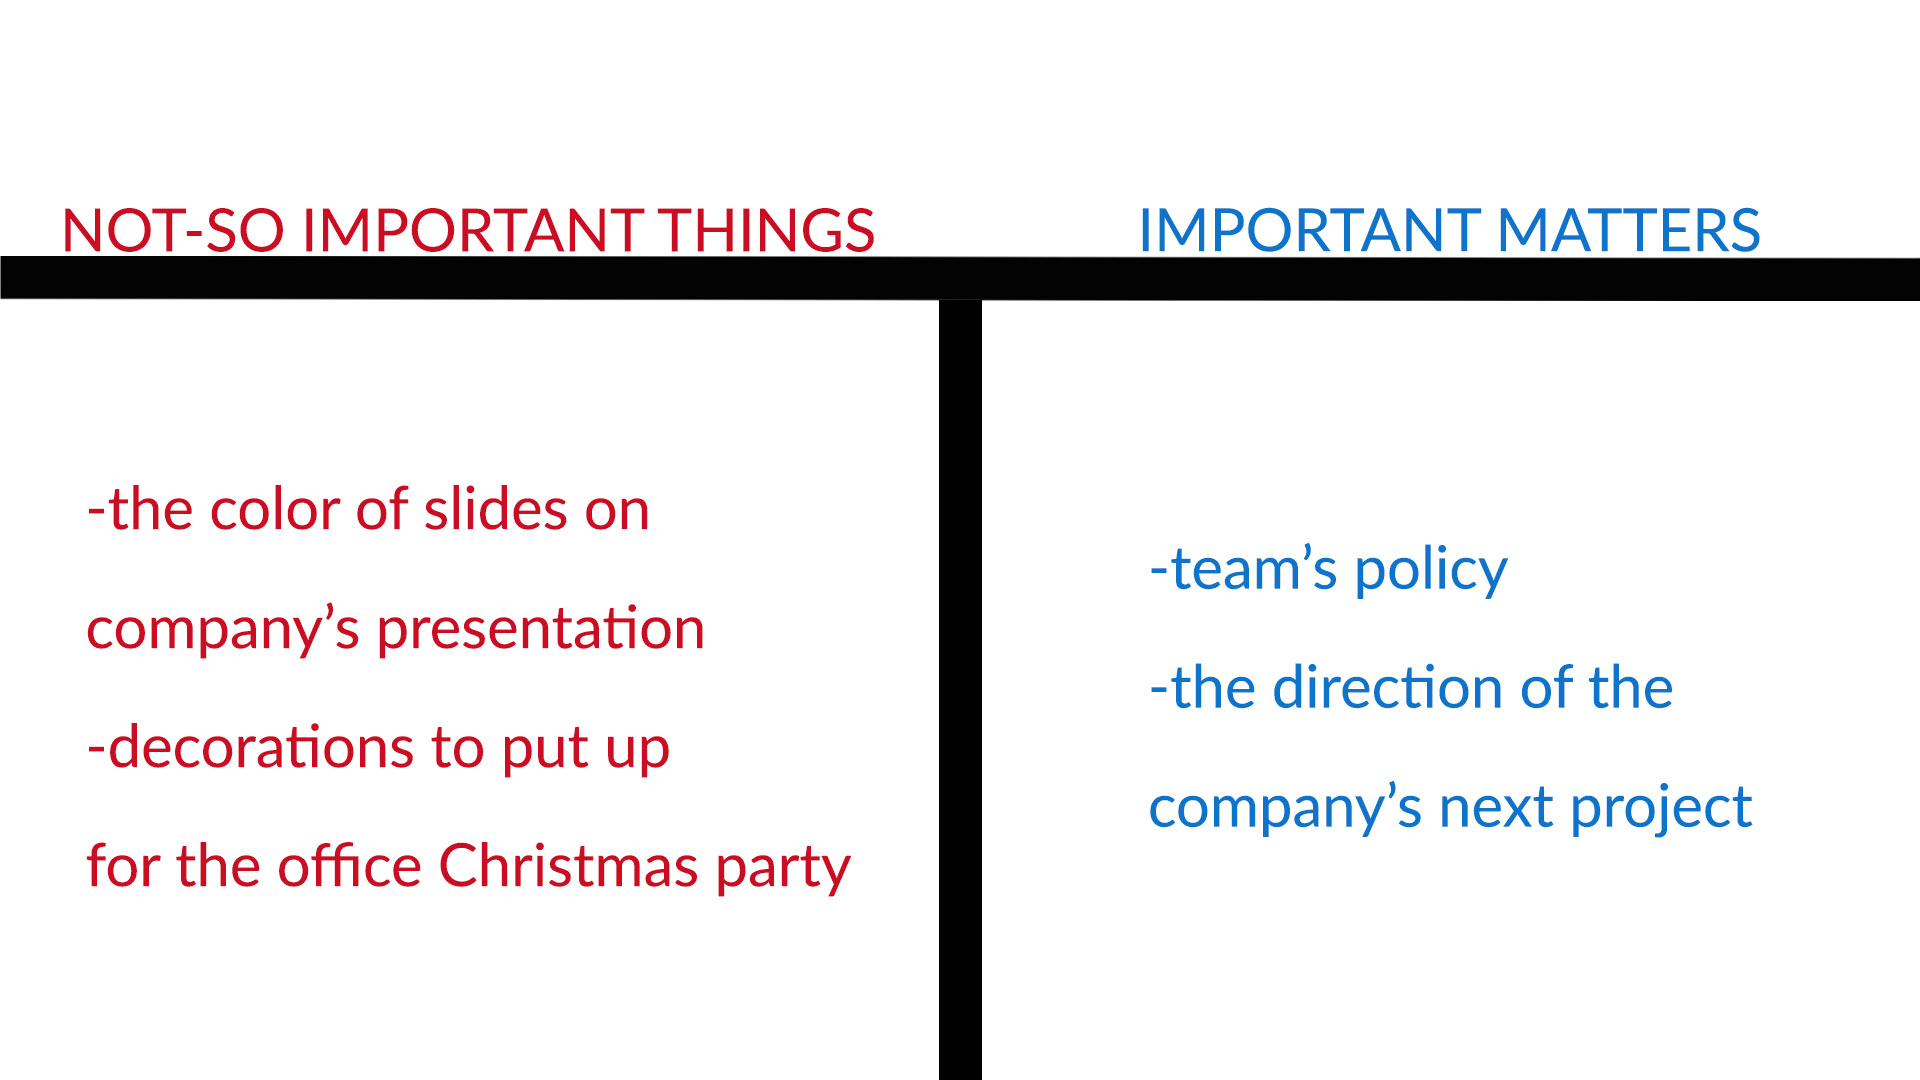 Not-so important things vs. Important matters